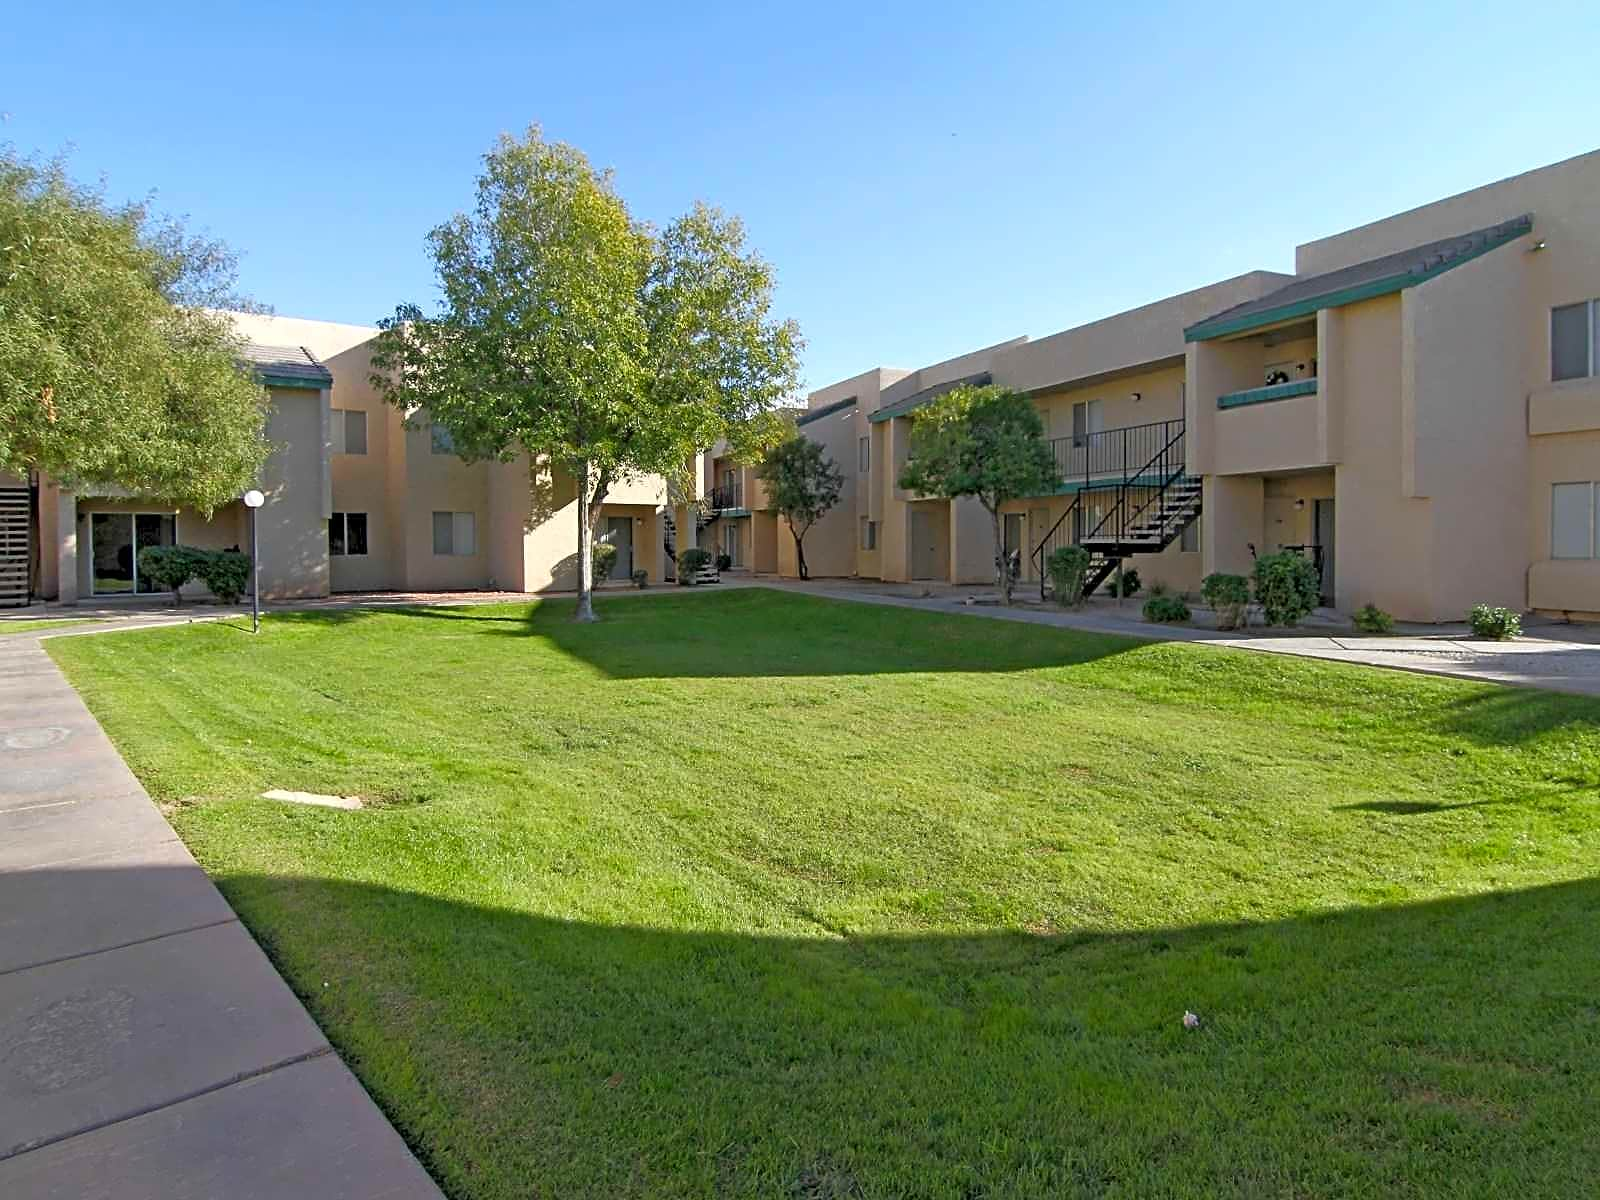 Photo: Yuma Apartment for Rent - $665.00 / month; 1 Bd & 1 Ba